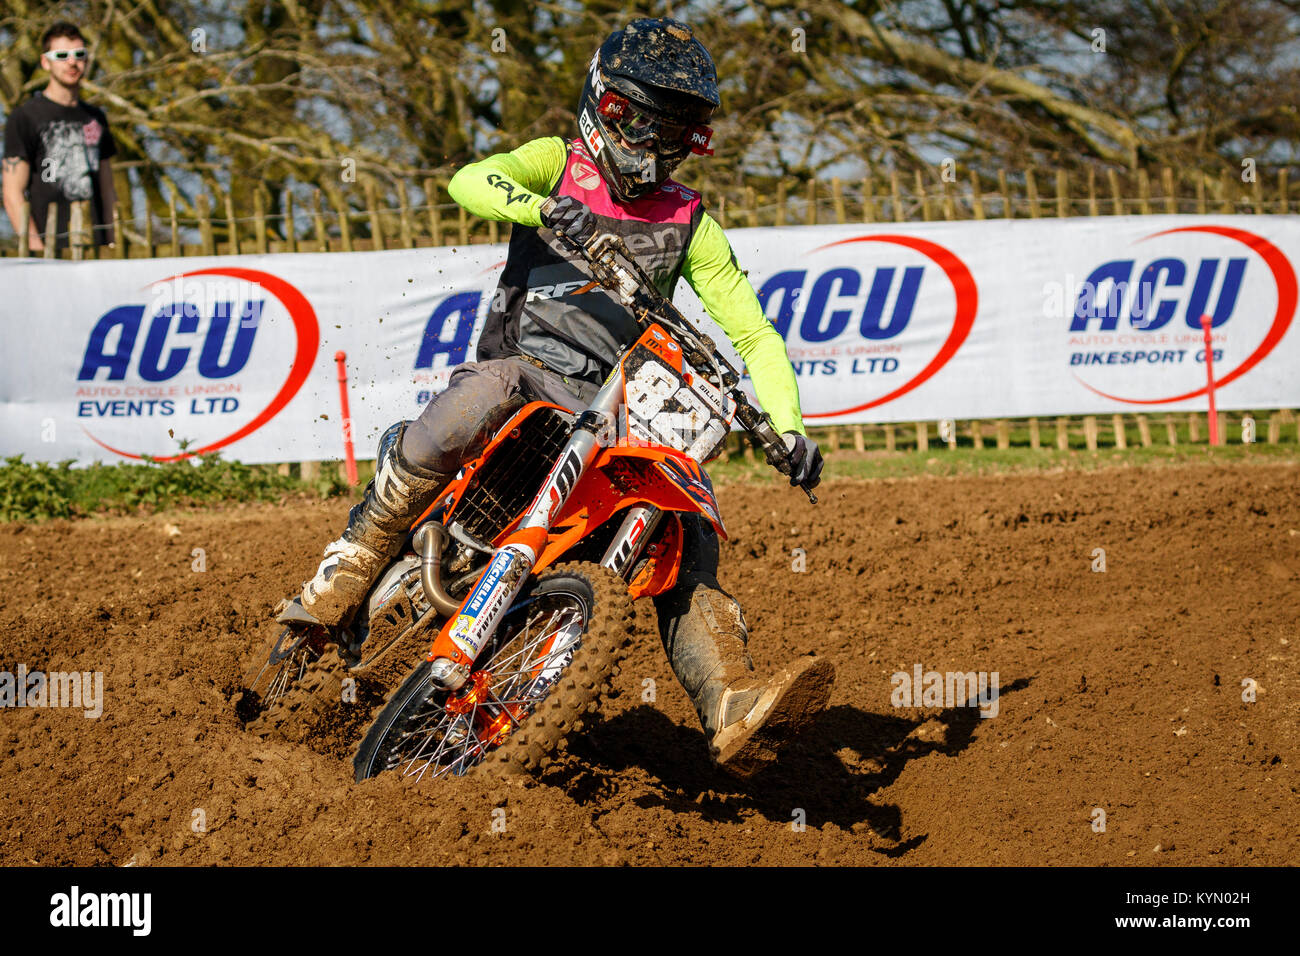 Patrick Gilligan on the RFX KTM at the 2017 Maxxis British Championship, Cadders Hill, Lyng, Norfolk, UK. - Stock Image